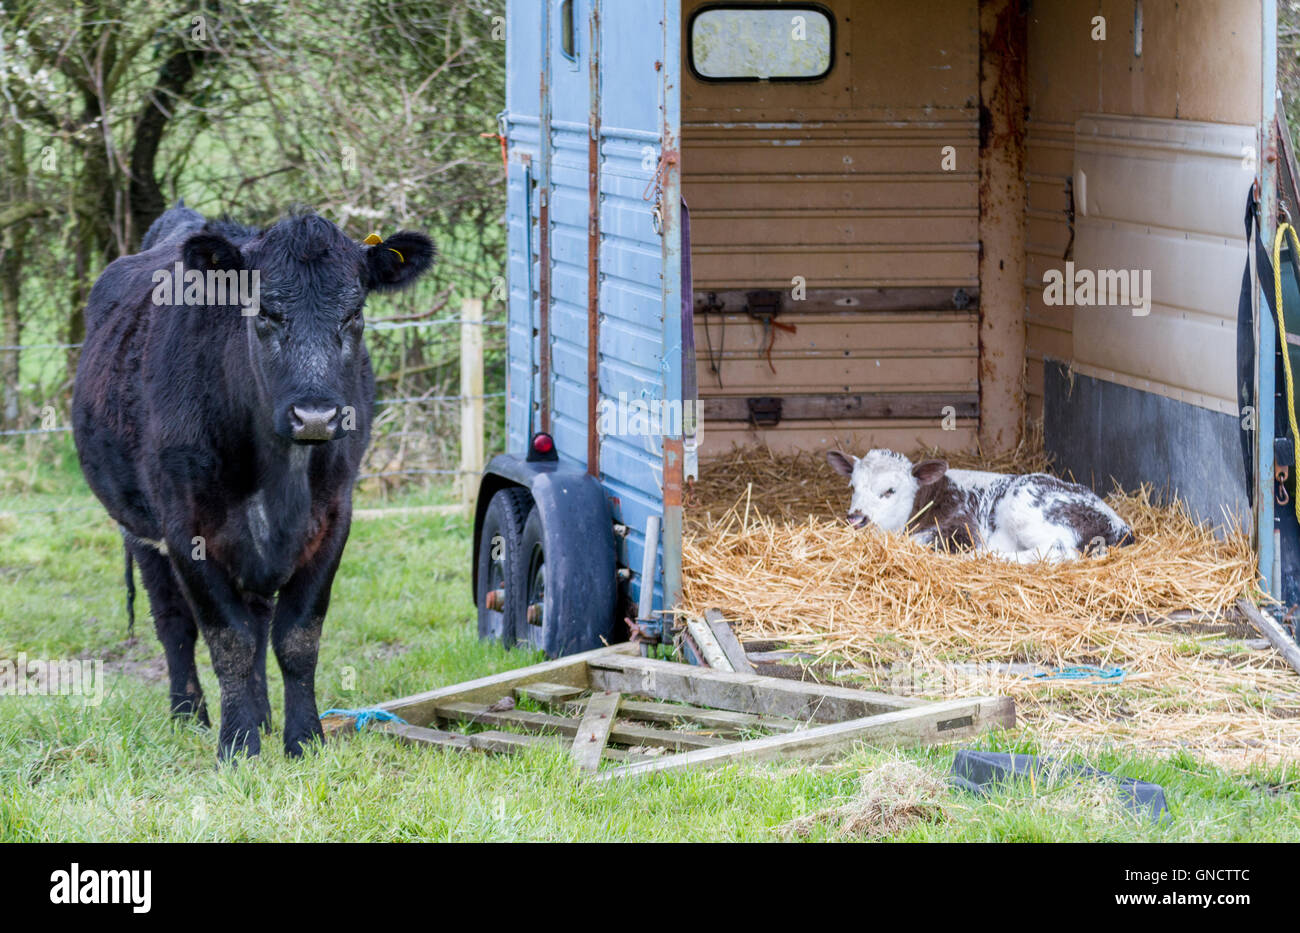 proud new mother cow watching fiercely over newborn deformed calf - Stock Image